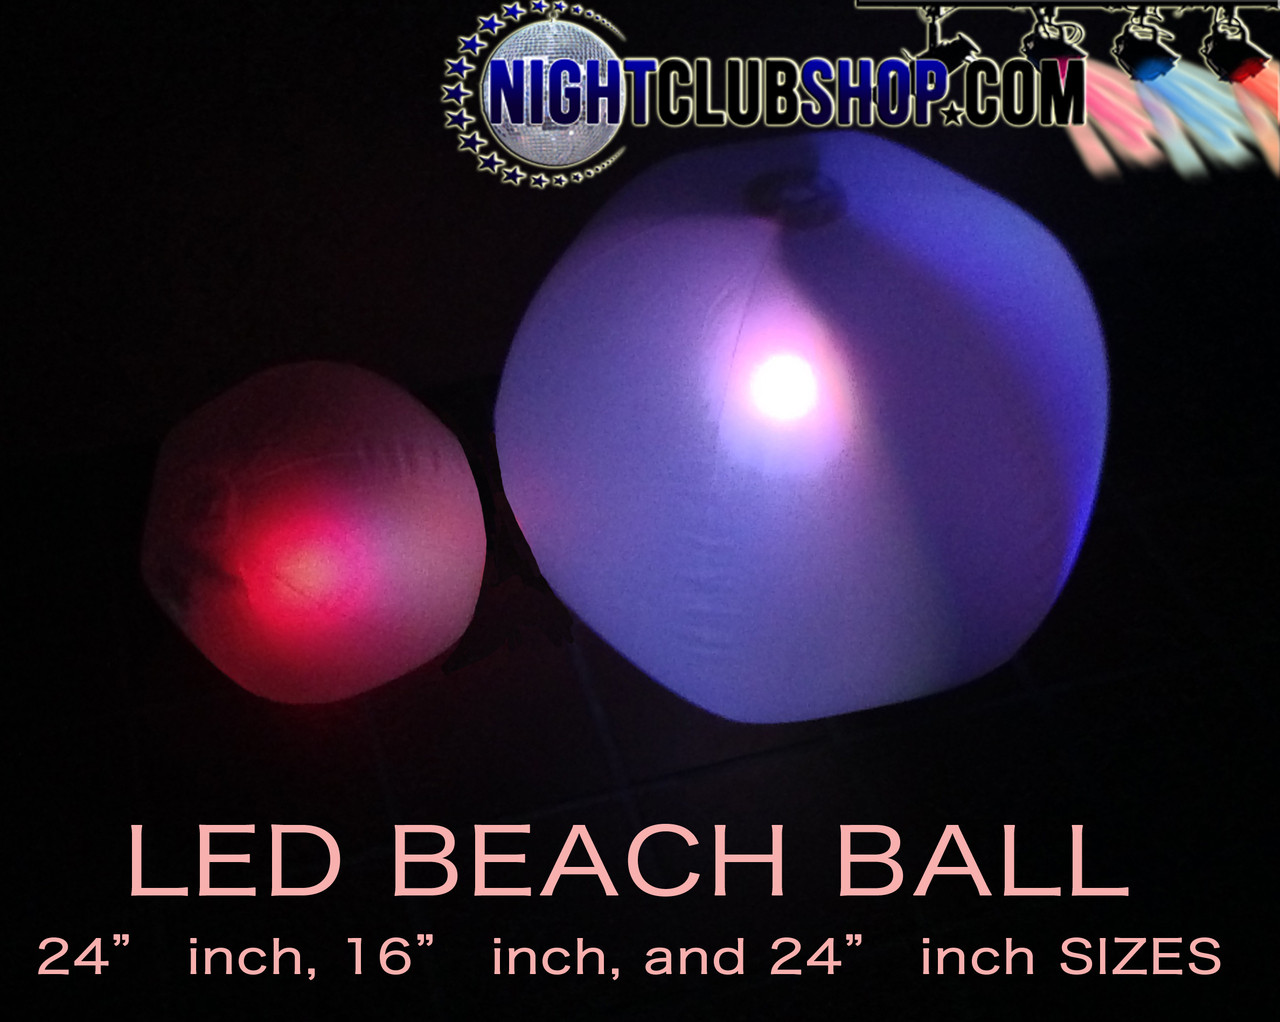 pool, party, LED, Glow, Light, illuminated, Light up, Beach ball, Beachball,Ball, Globo,